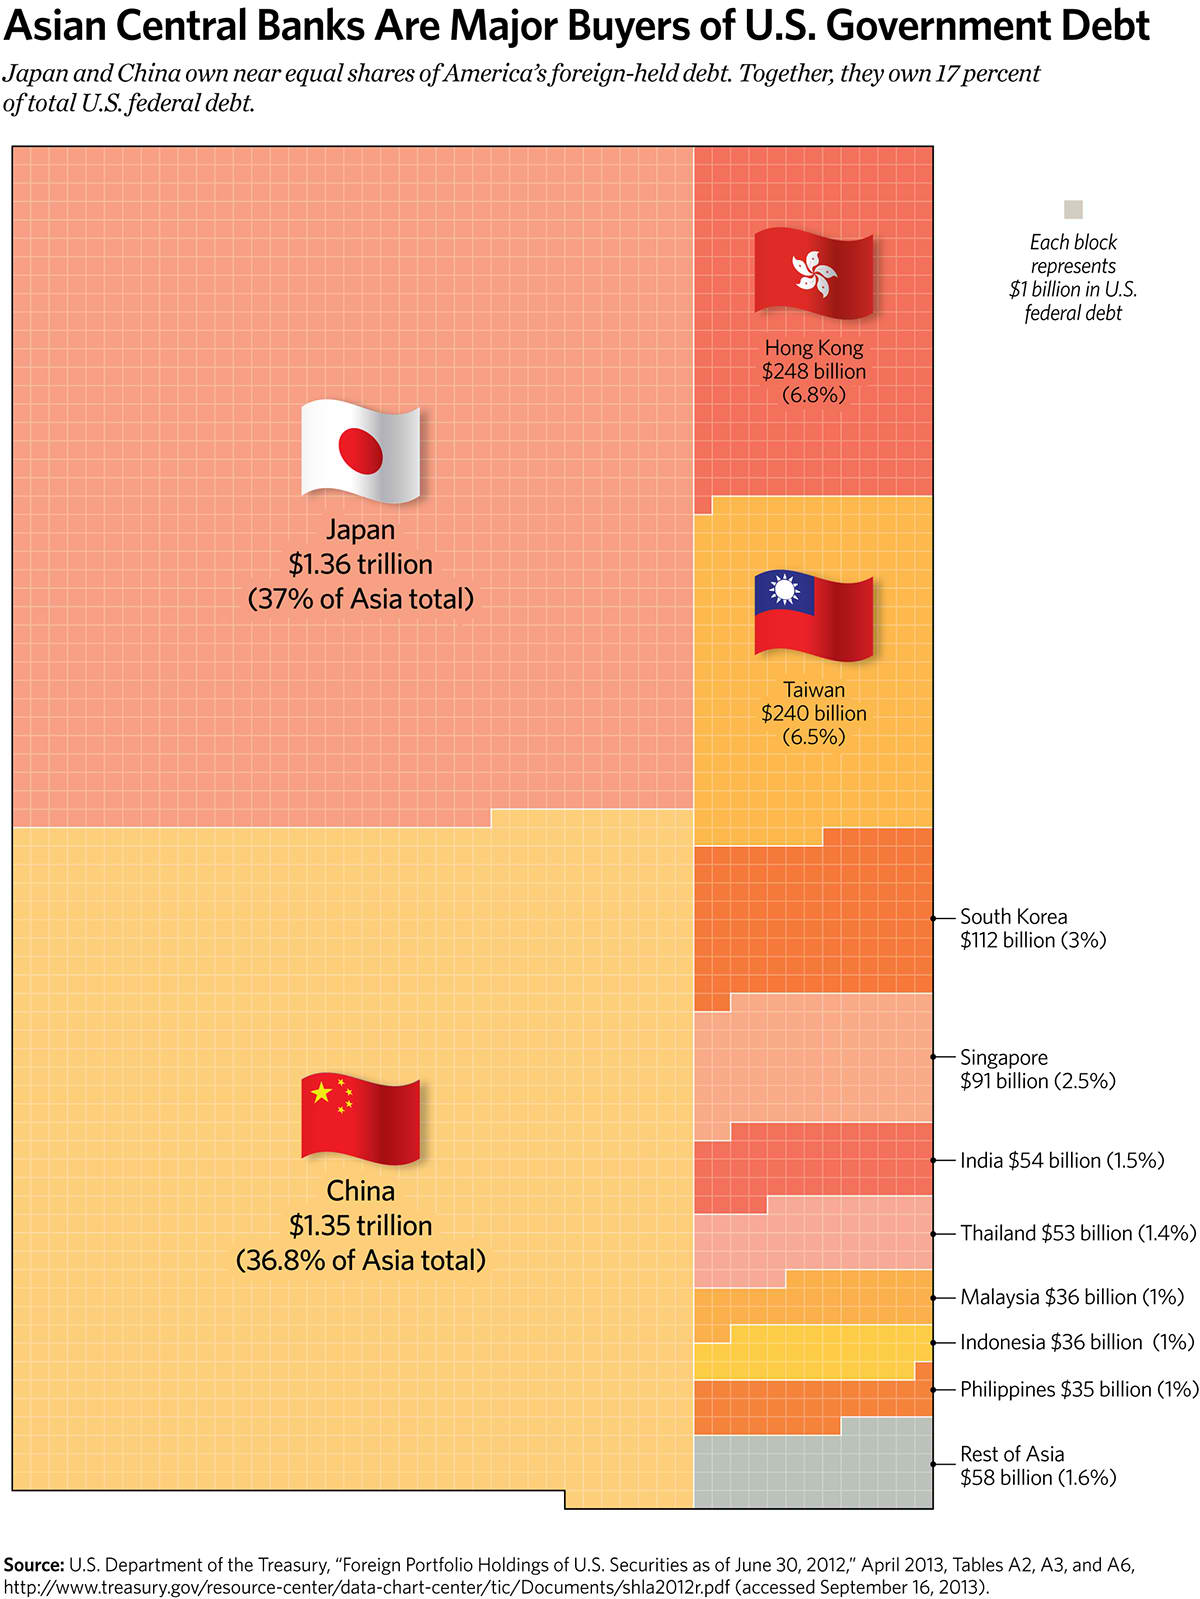 Asian Central Banks Are Major Buyers of U.S. Government Debt